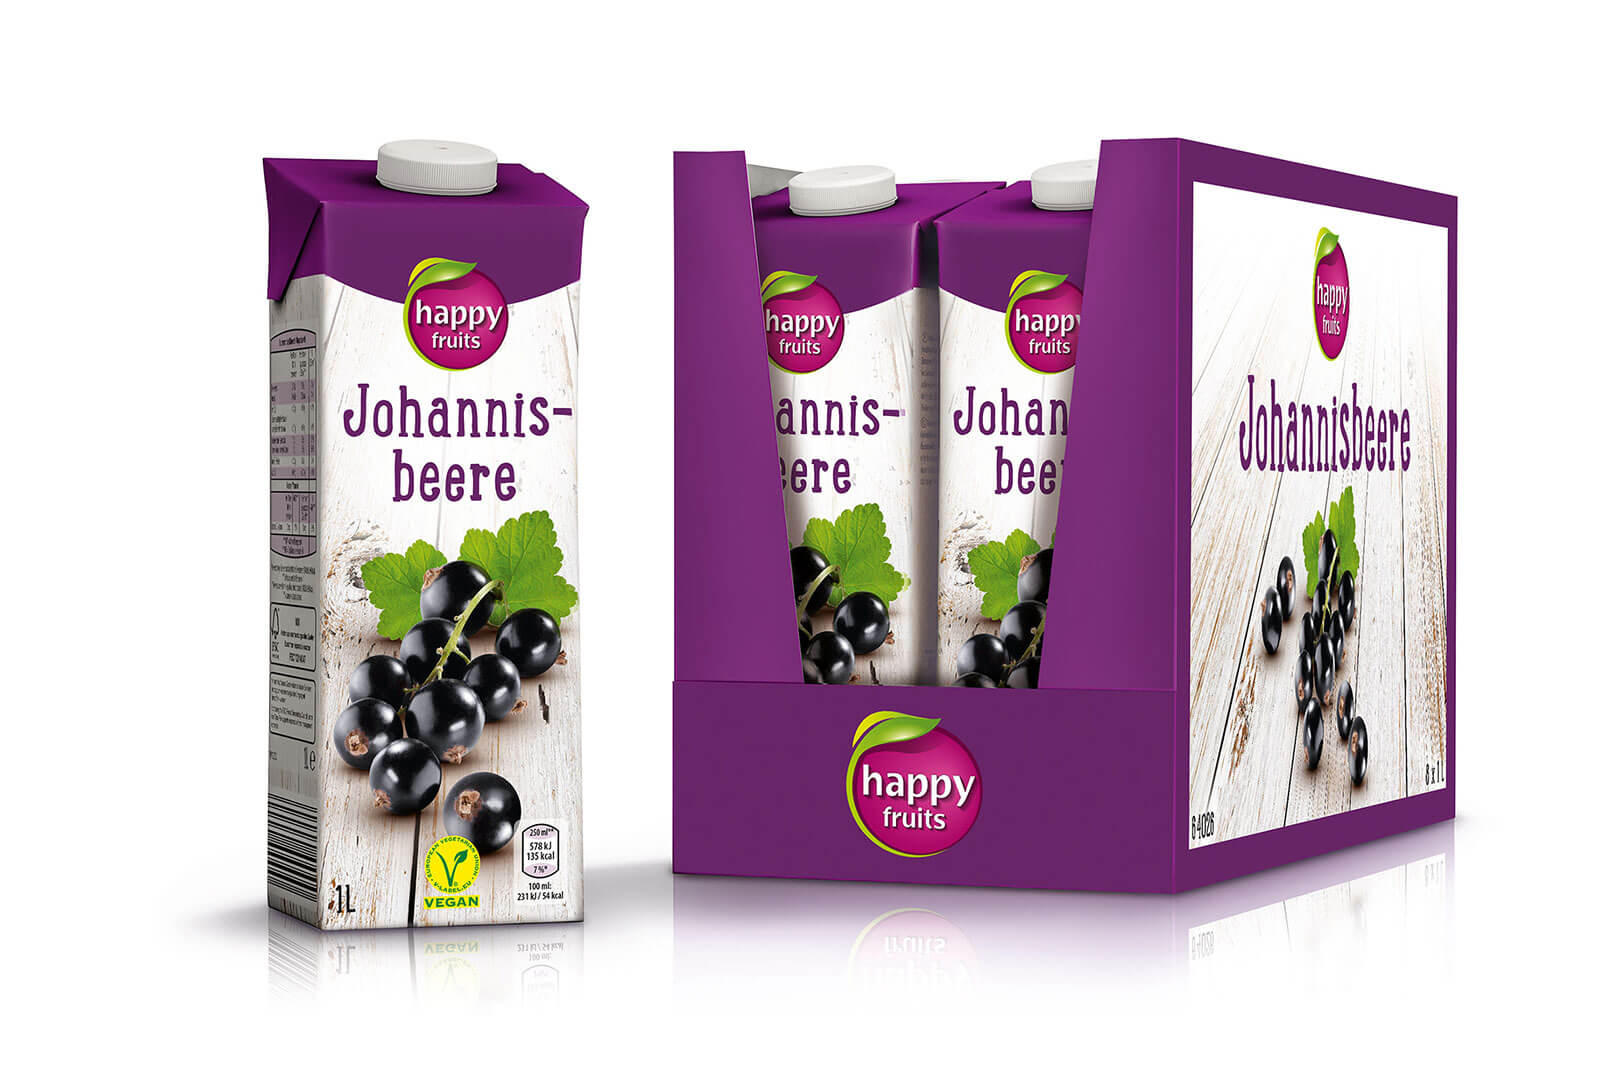 hofer saefte happy fruits tray johannisbeere design packaging rubicon